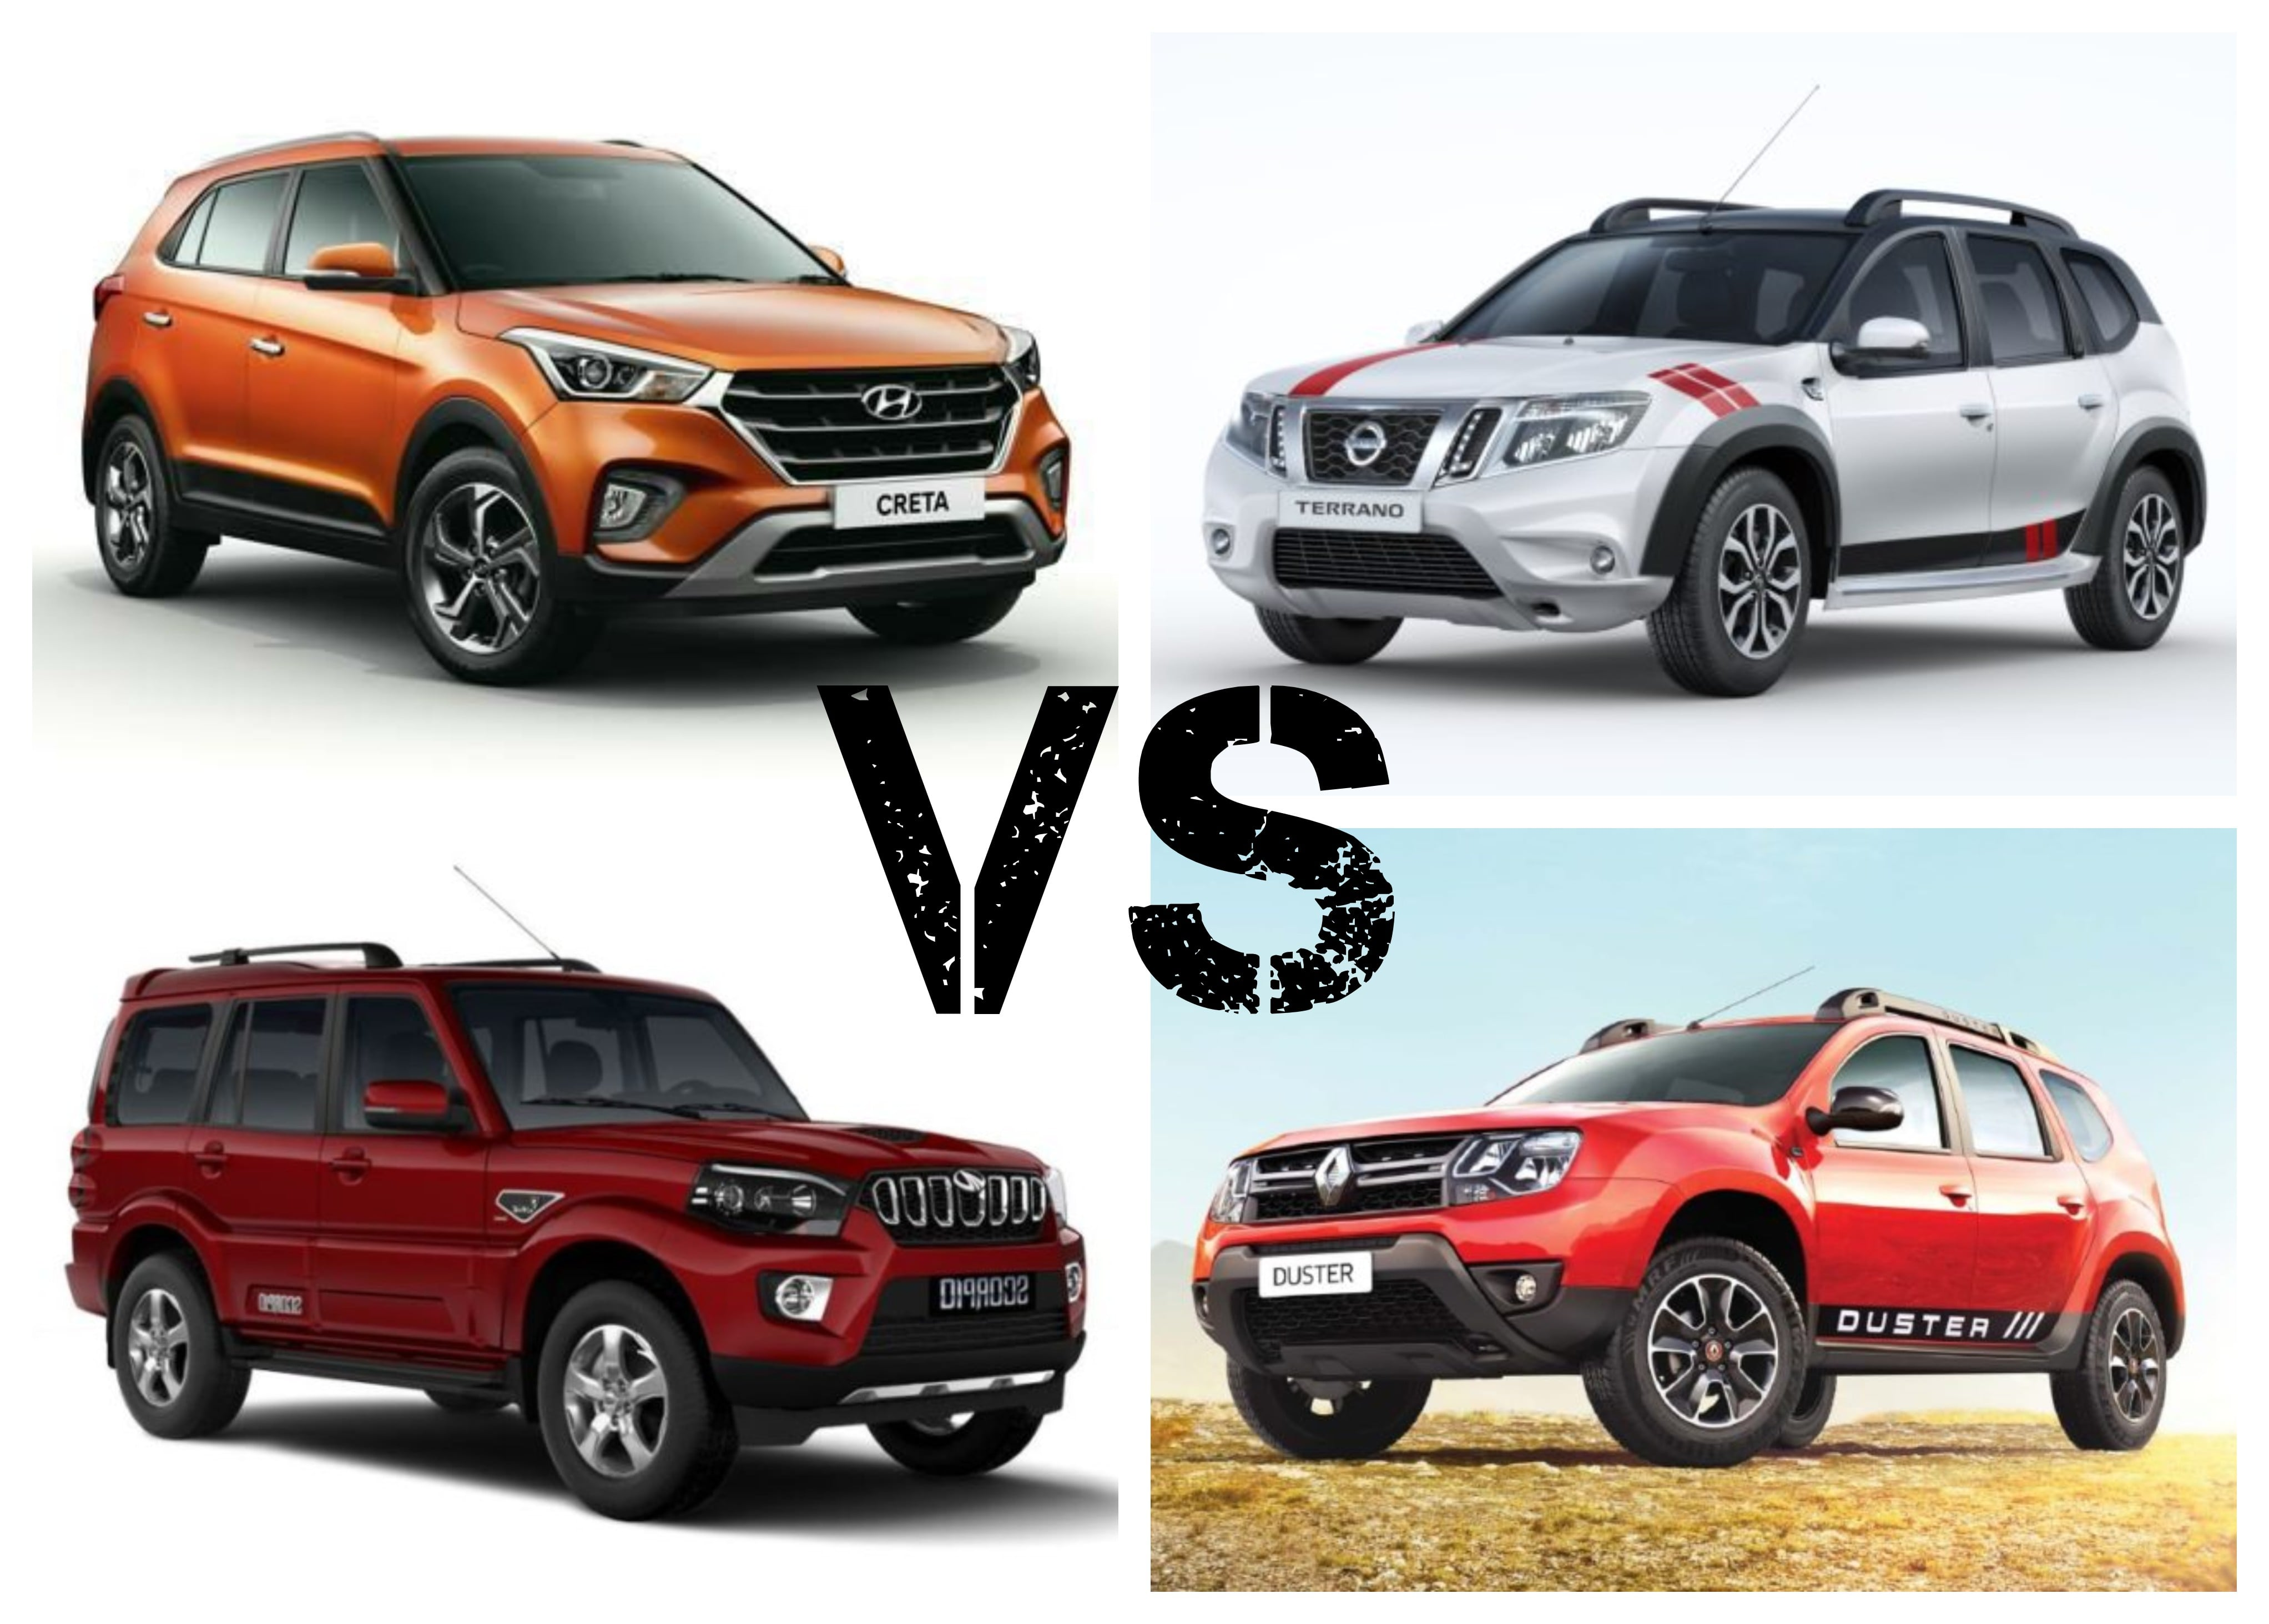 2018 Hyundai Creta Facelift Vs Competition - Price Comparison